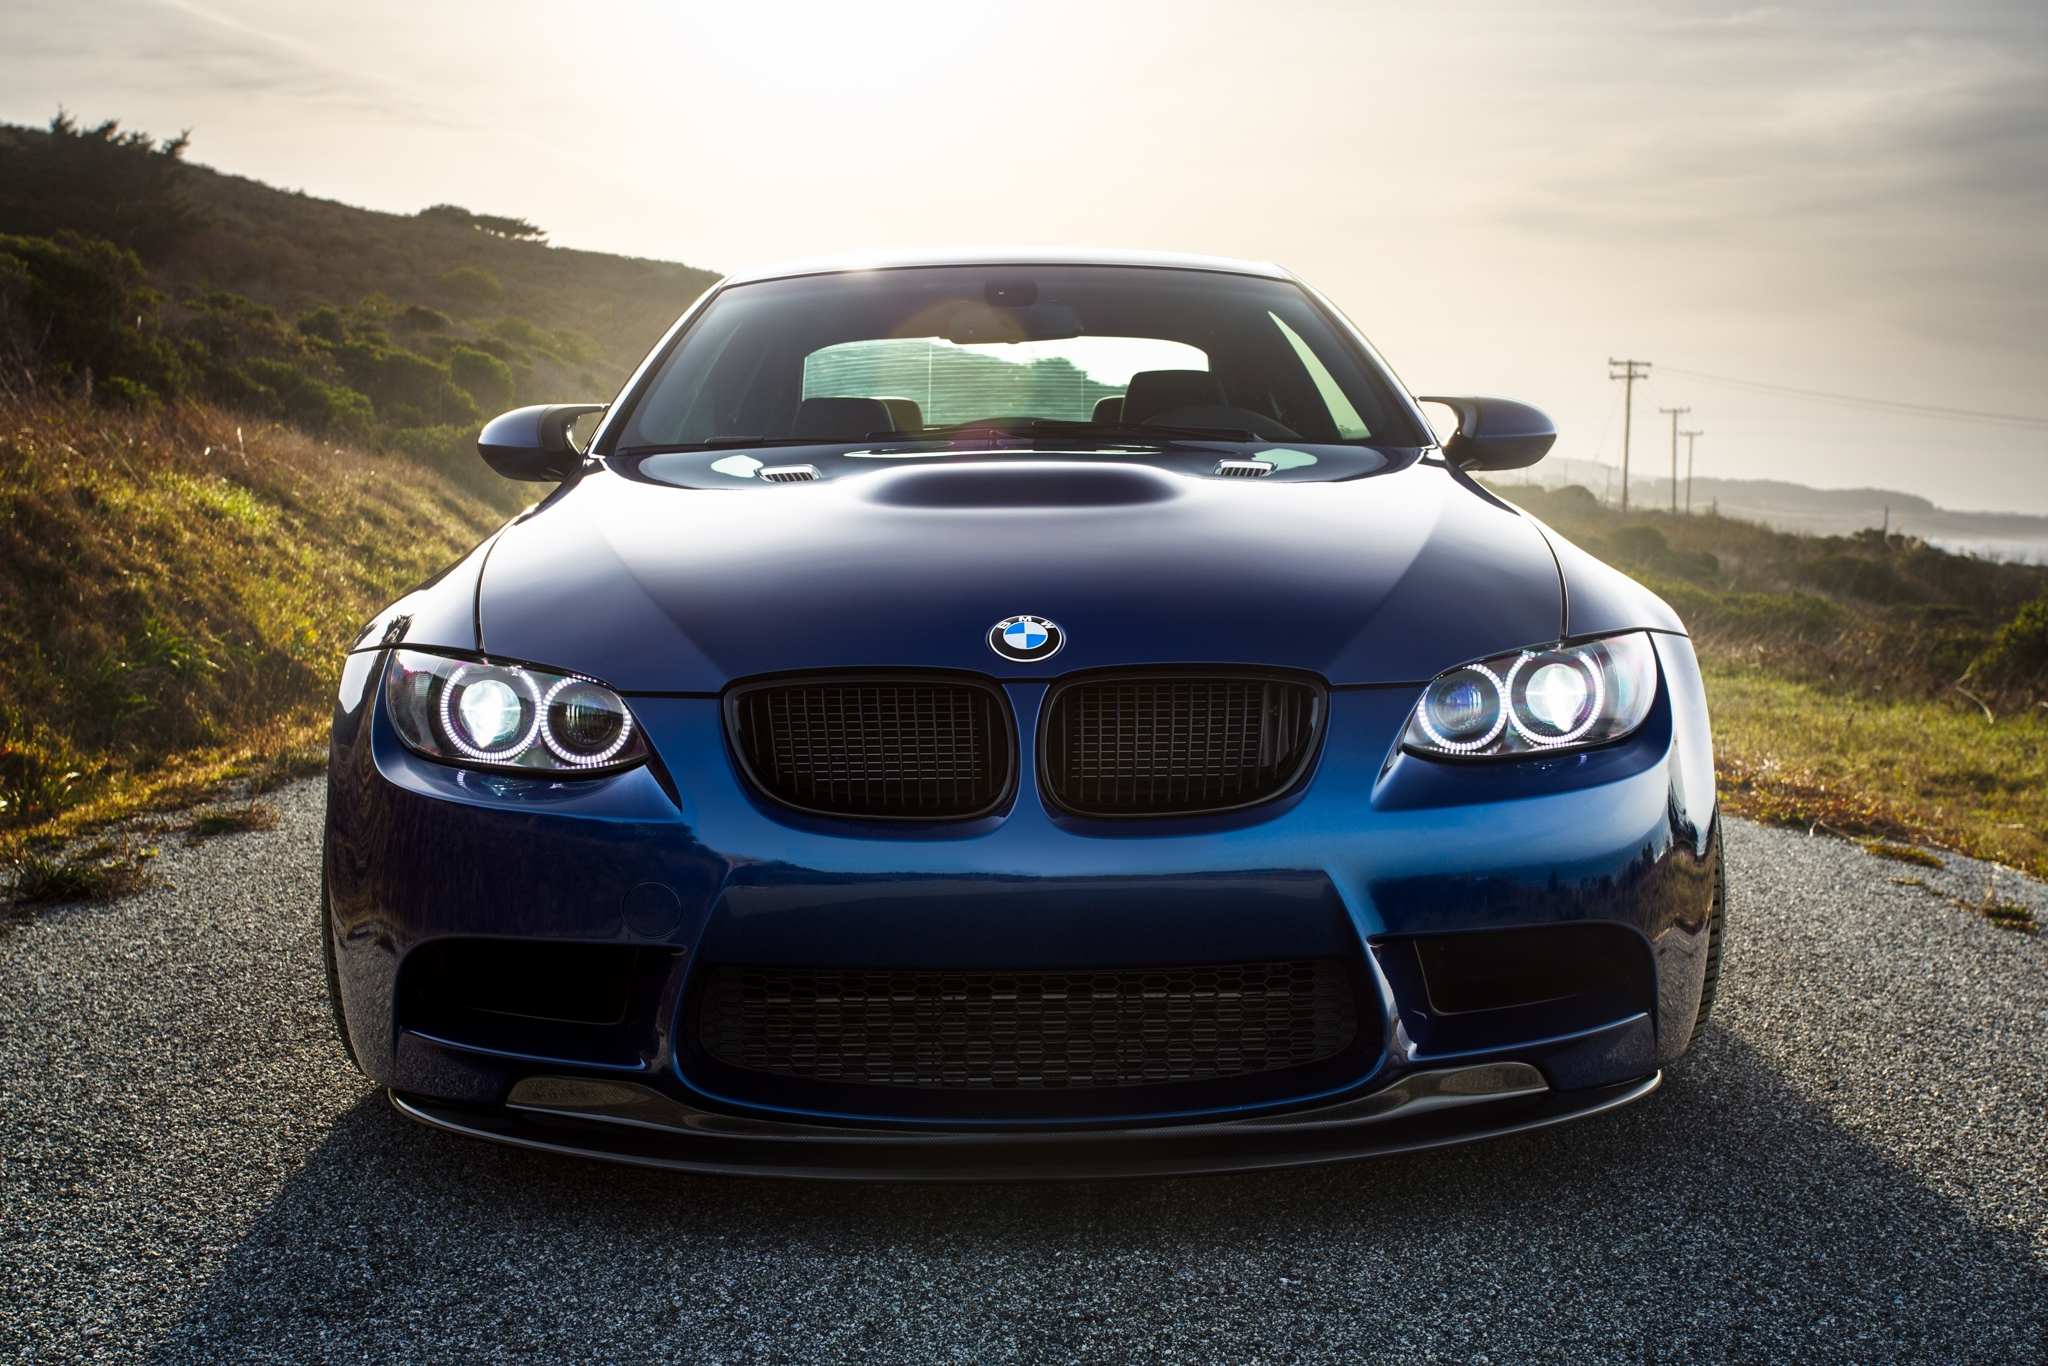 148738 download wallpaper Bmw, Cars, Shadow, M3, E92, Laguna Blue screensavers and pictures for free